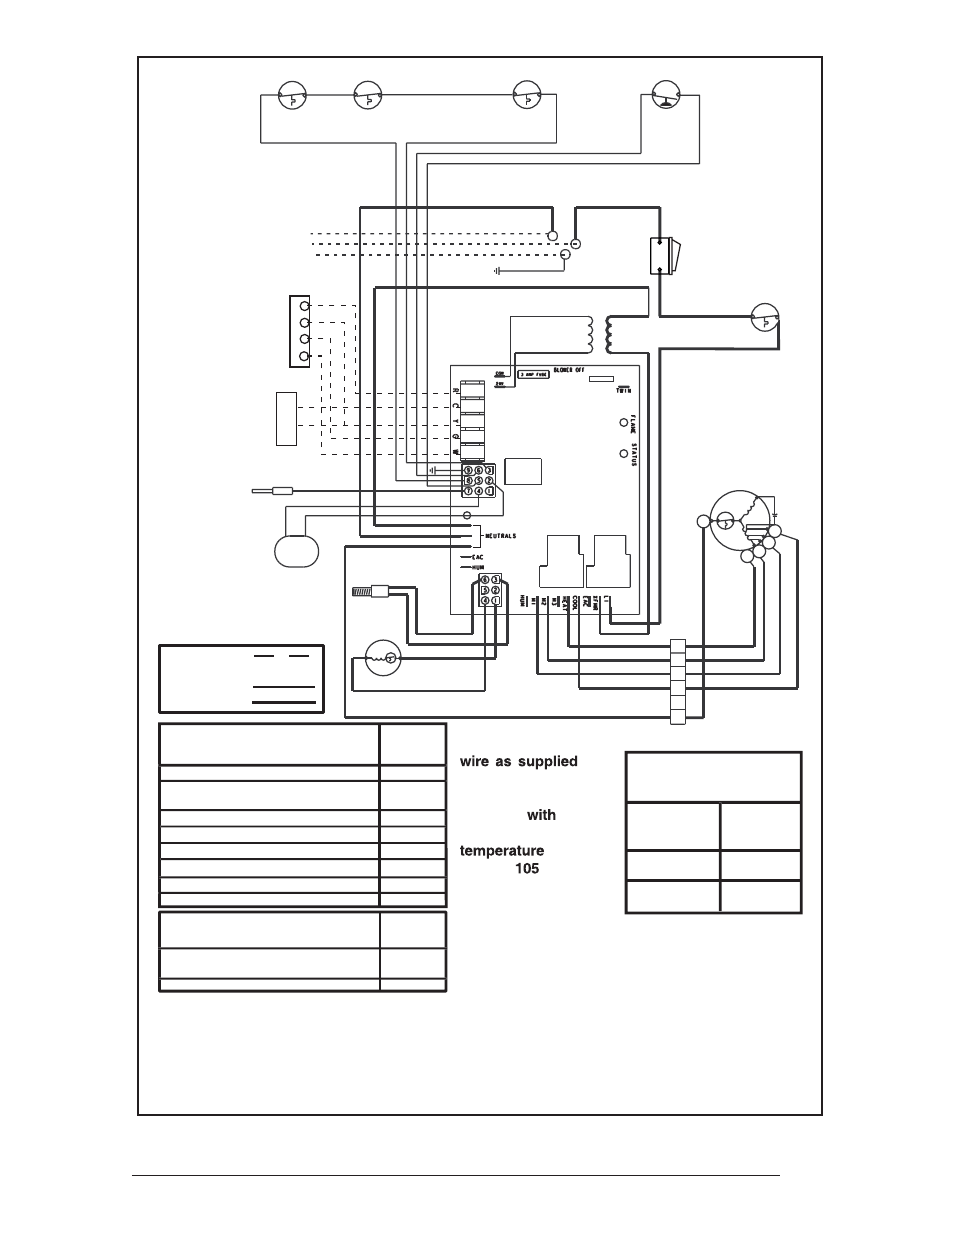 33 figure 30. downflow furnace wiring diagram, Legend